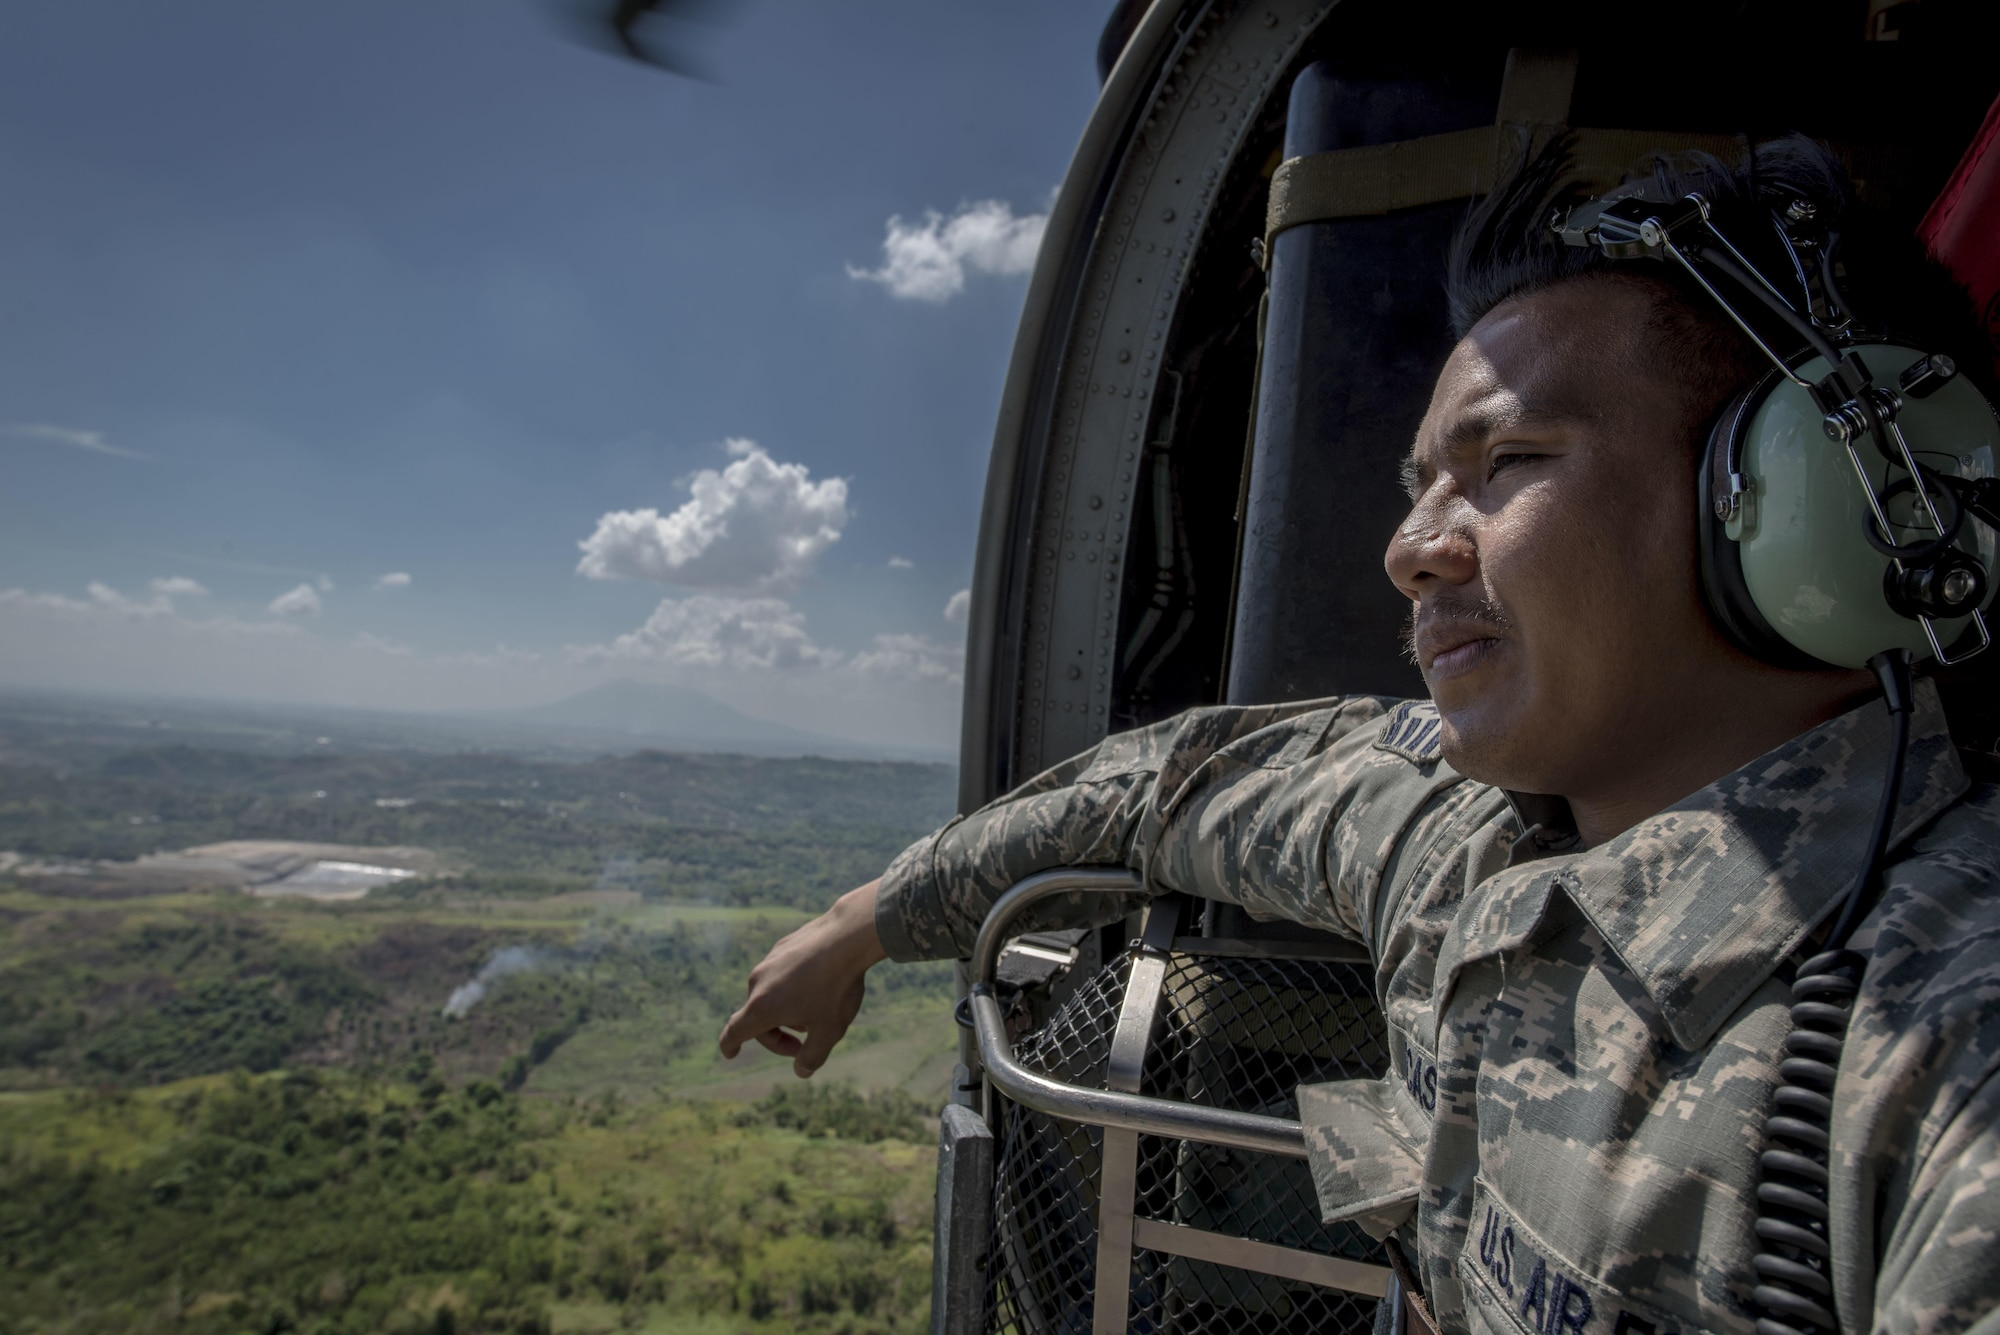 U.S. Air Force Staff Sgt. Jay Perocho Acasio, an aircrew flight equipment journeyman with the 51st Operations Support Squadron, Osan Air Base, Republic of Korea, looks out over his home country during a HH-60G Pave Hawk flight near Clark Air Base, Philippines, April 22, 2016. The staff sergeant is one of three Filipino-American Airmen serving U.S. Pacific Command's newly stood upAir Contingent in the Philippines. Acasio is from Ozamiz City in the Misamis Occidental, Philippines. (U.S. Air Force photo by Staff Sgt. Benjamin W. Stratton)